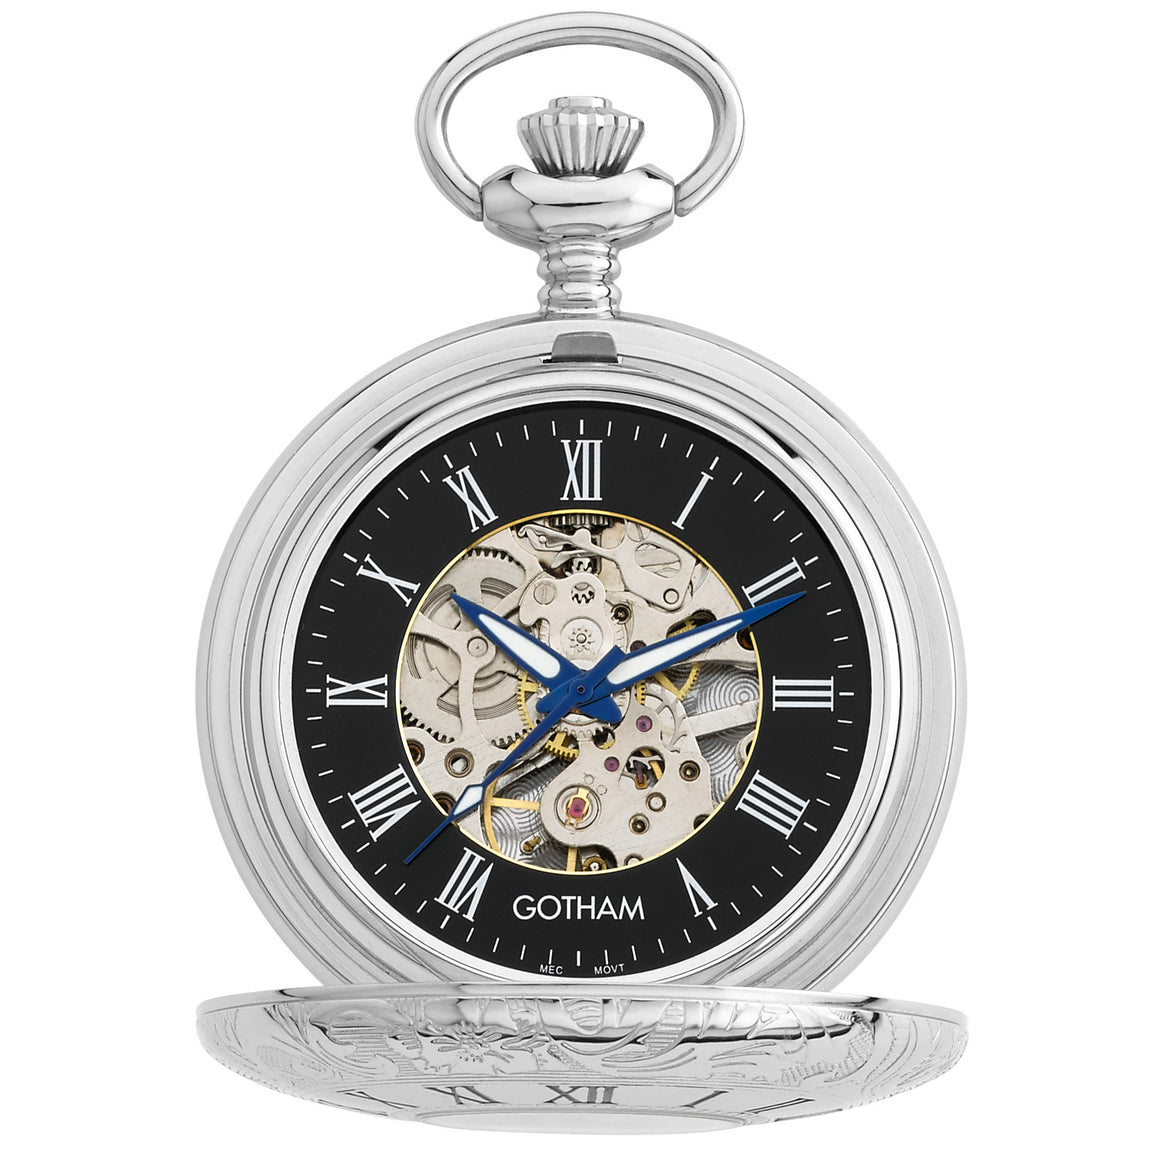 Gotham Men's Silver-Tone Mechanical Pocket Watch with Desktop Stand # GWC14040SB-ST